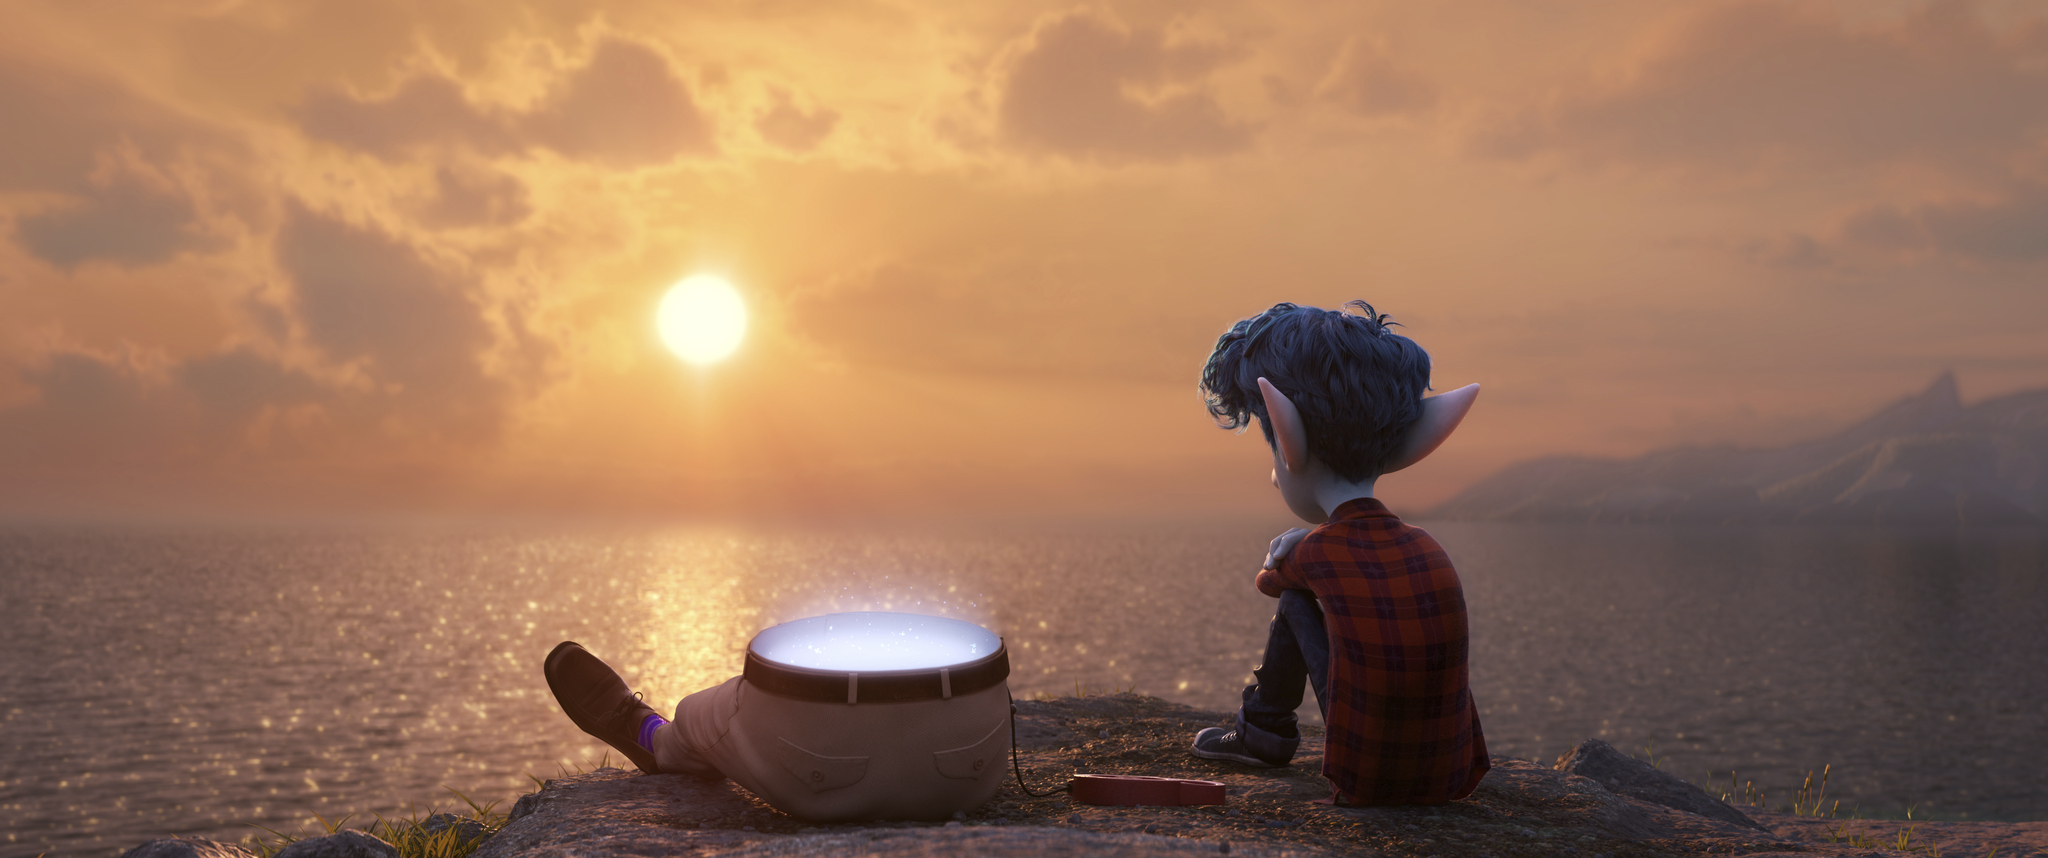 Disney and Pixar's 'Onward' gets new trailer, character posters